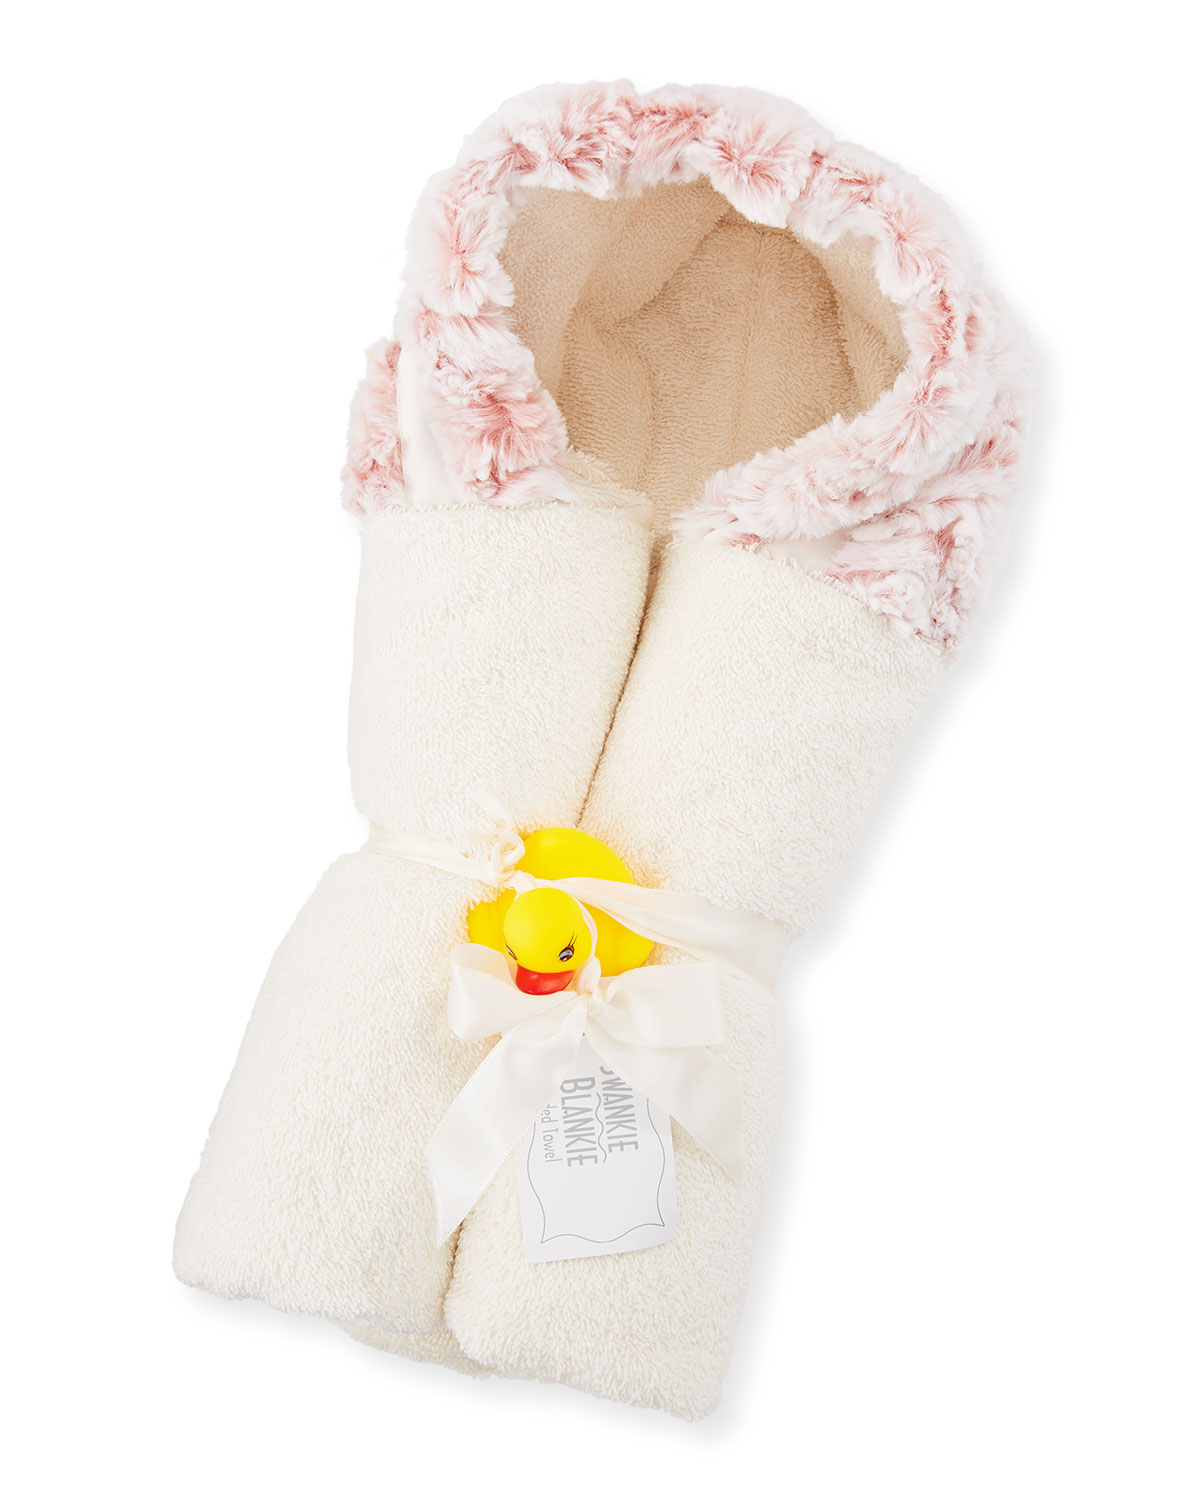 Riley Hooded Towel, Pink